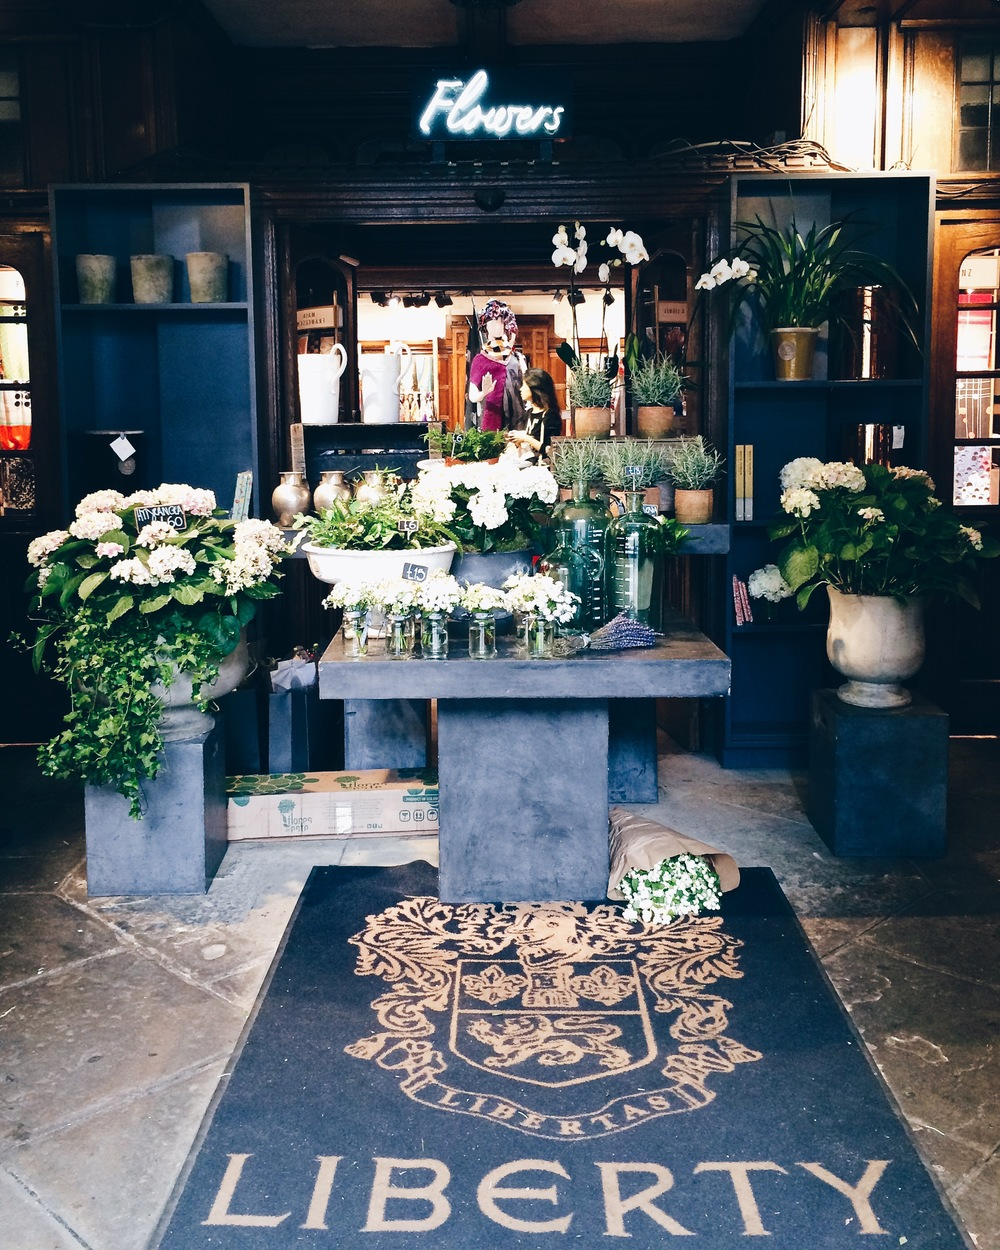 My favorite portion of Liberty: the flower shop.